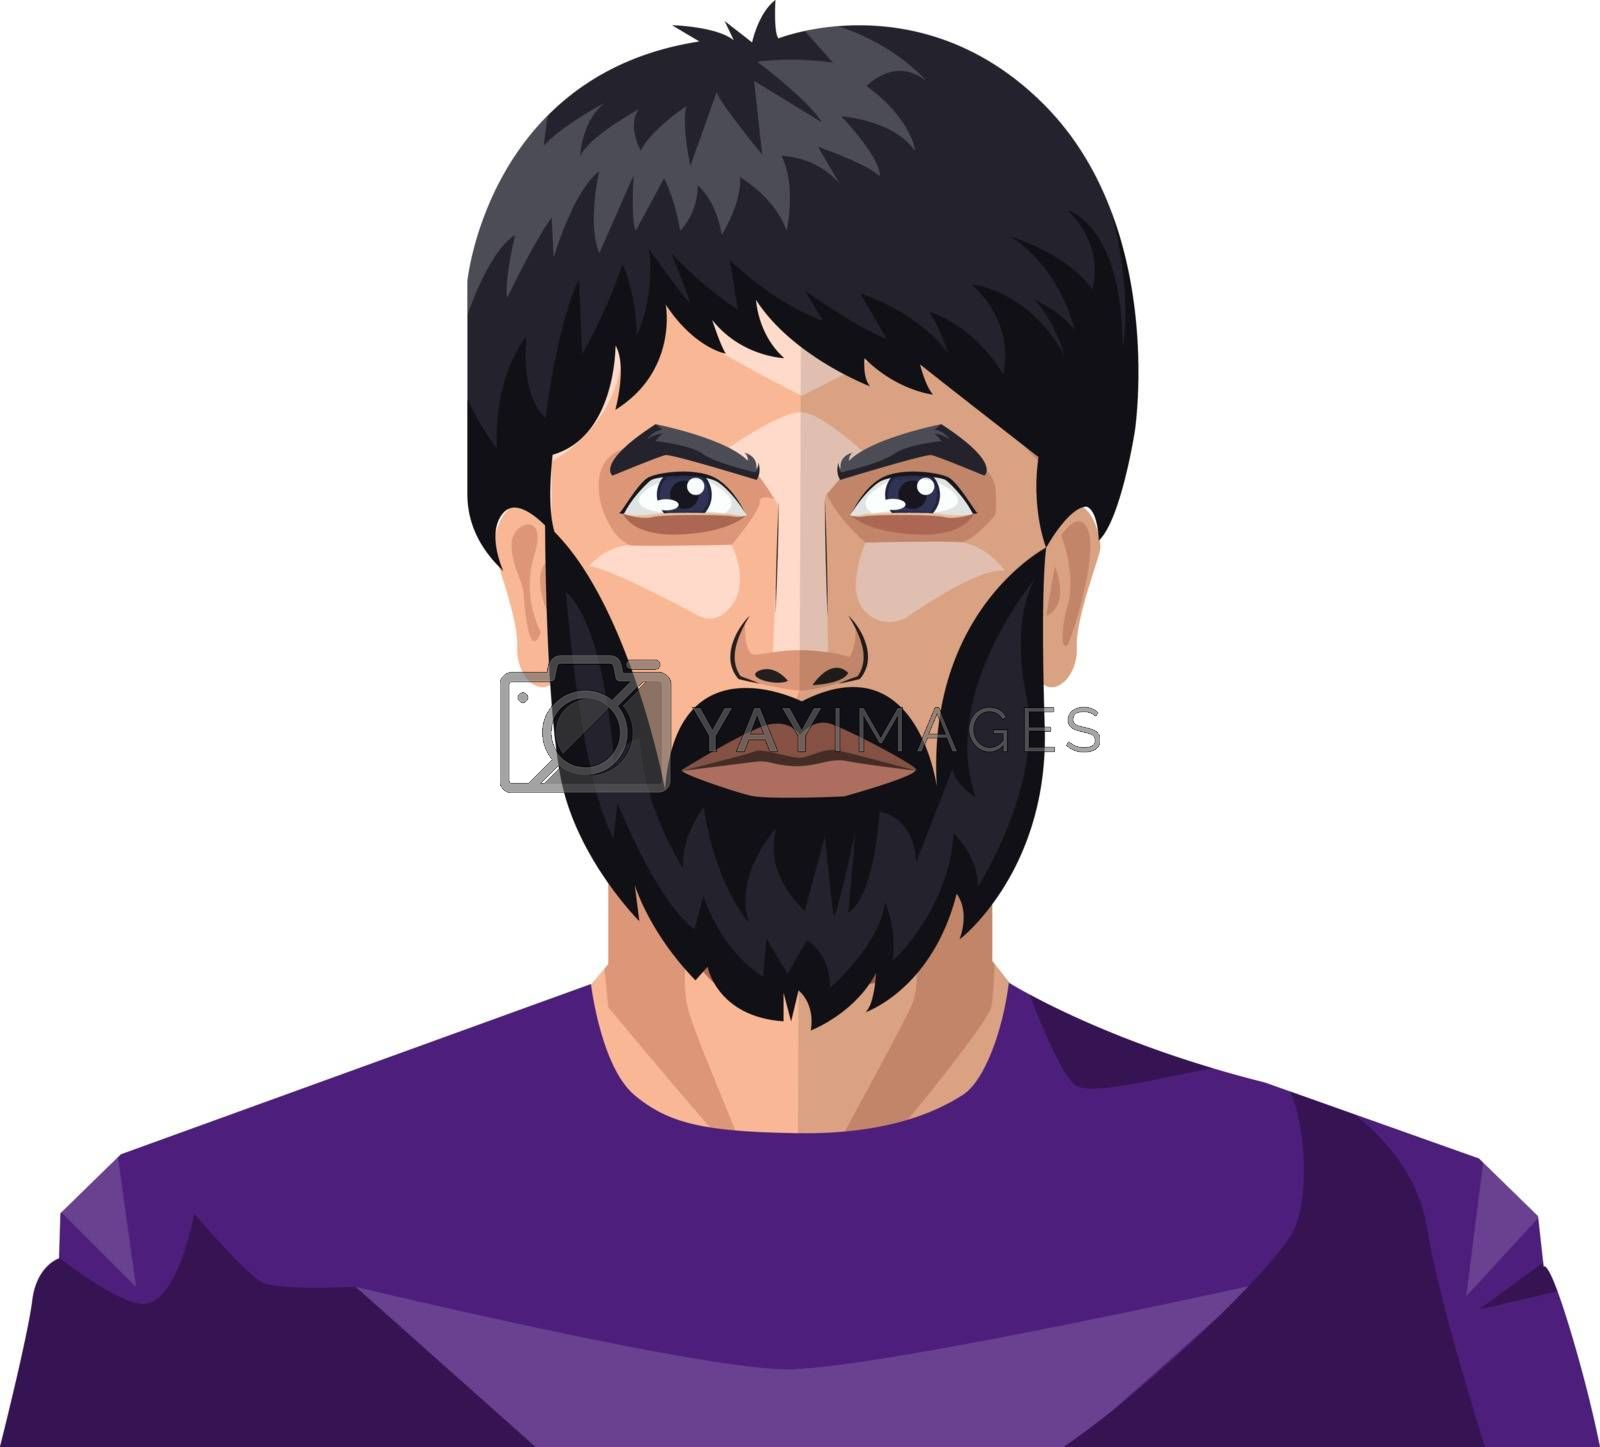 Royalty free image of Man with a beard and long black hair illustration vector on whit by Morphart